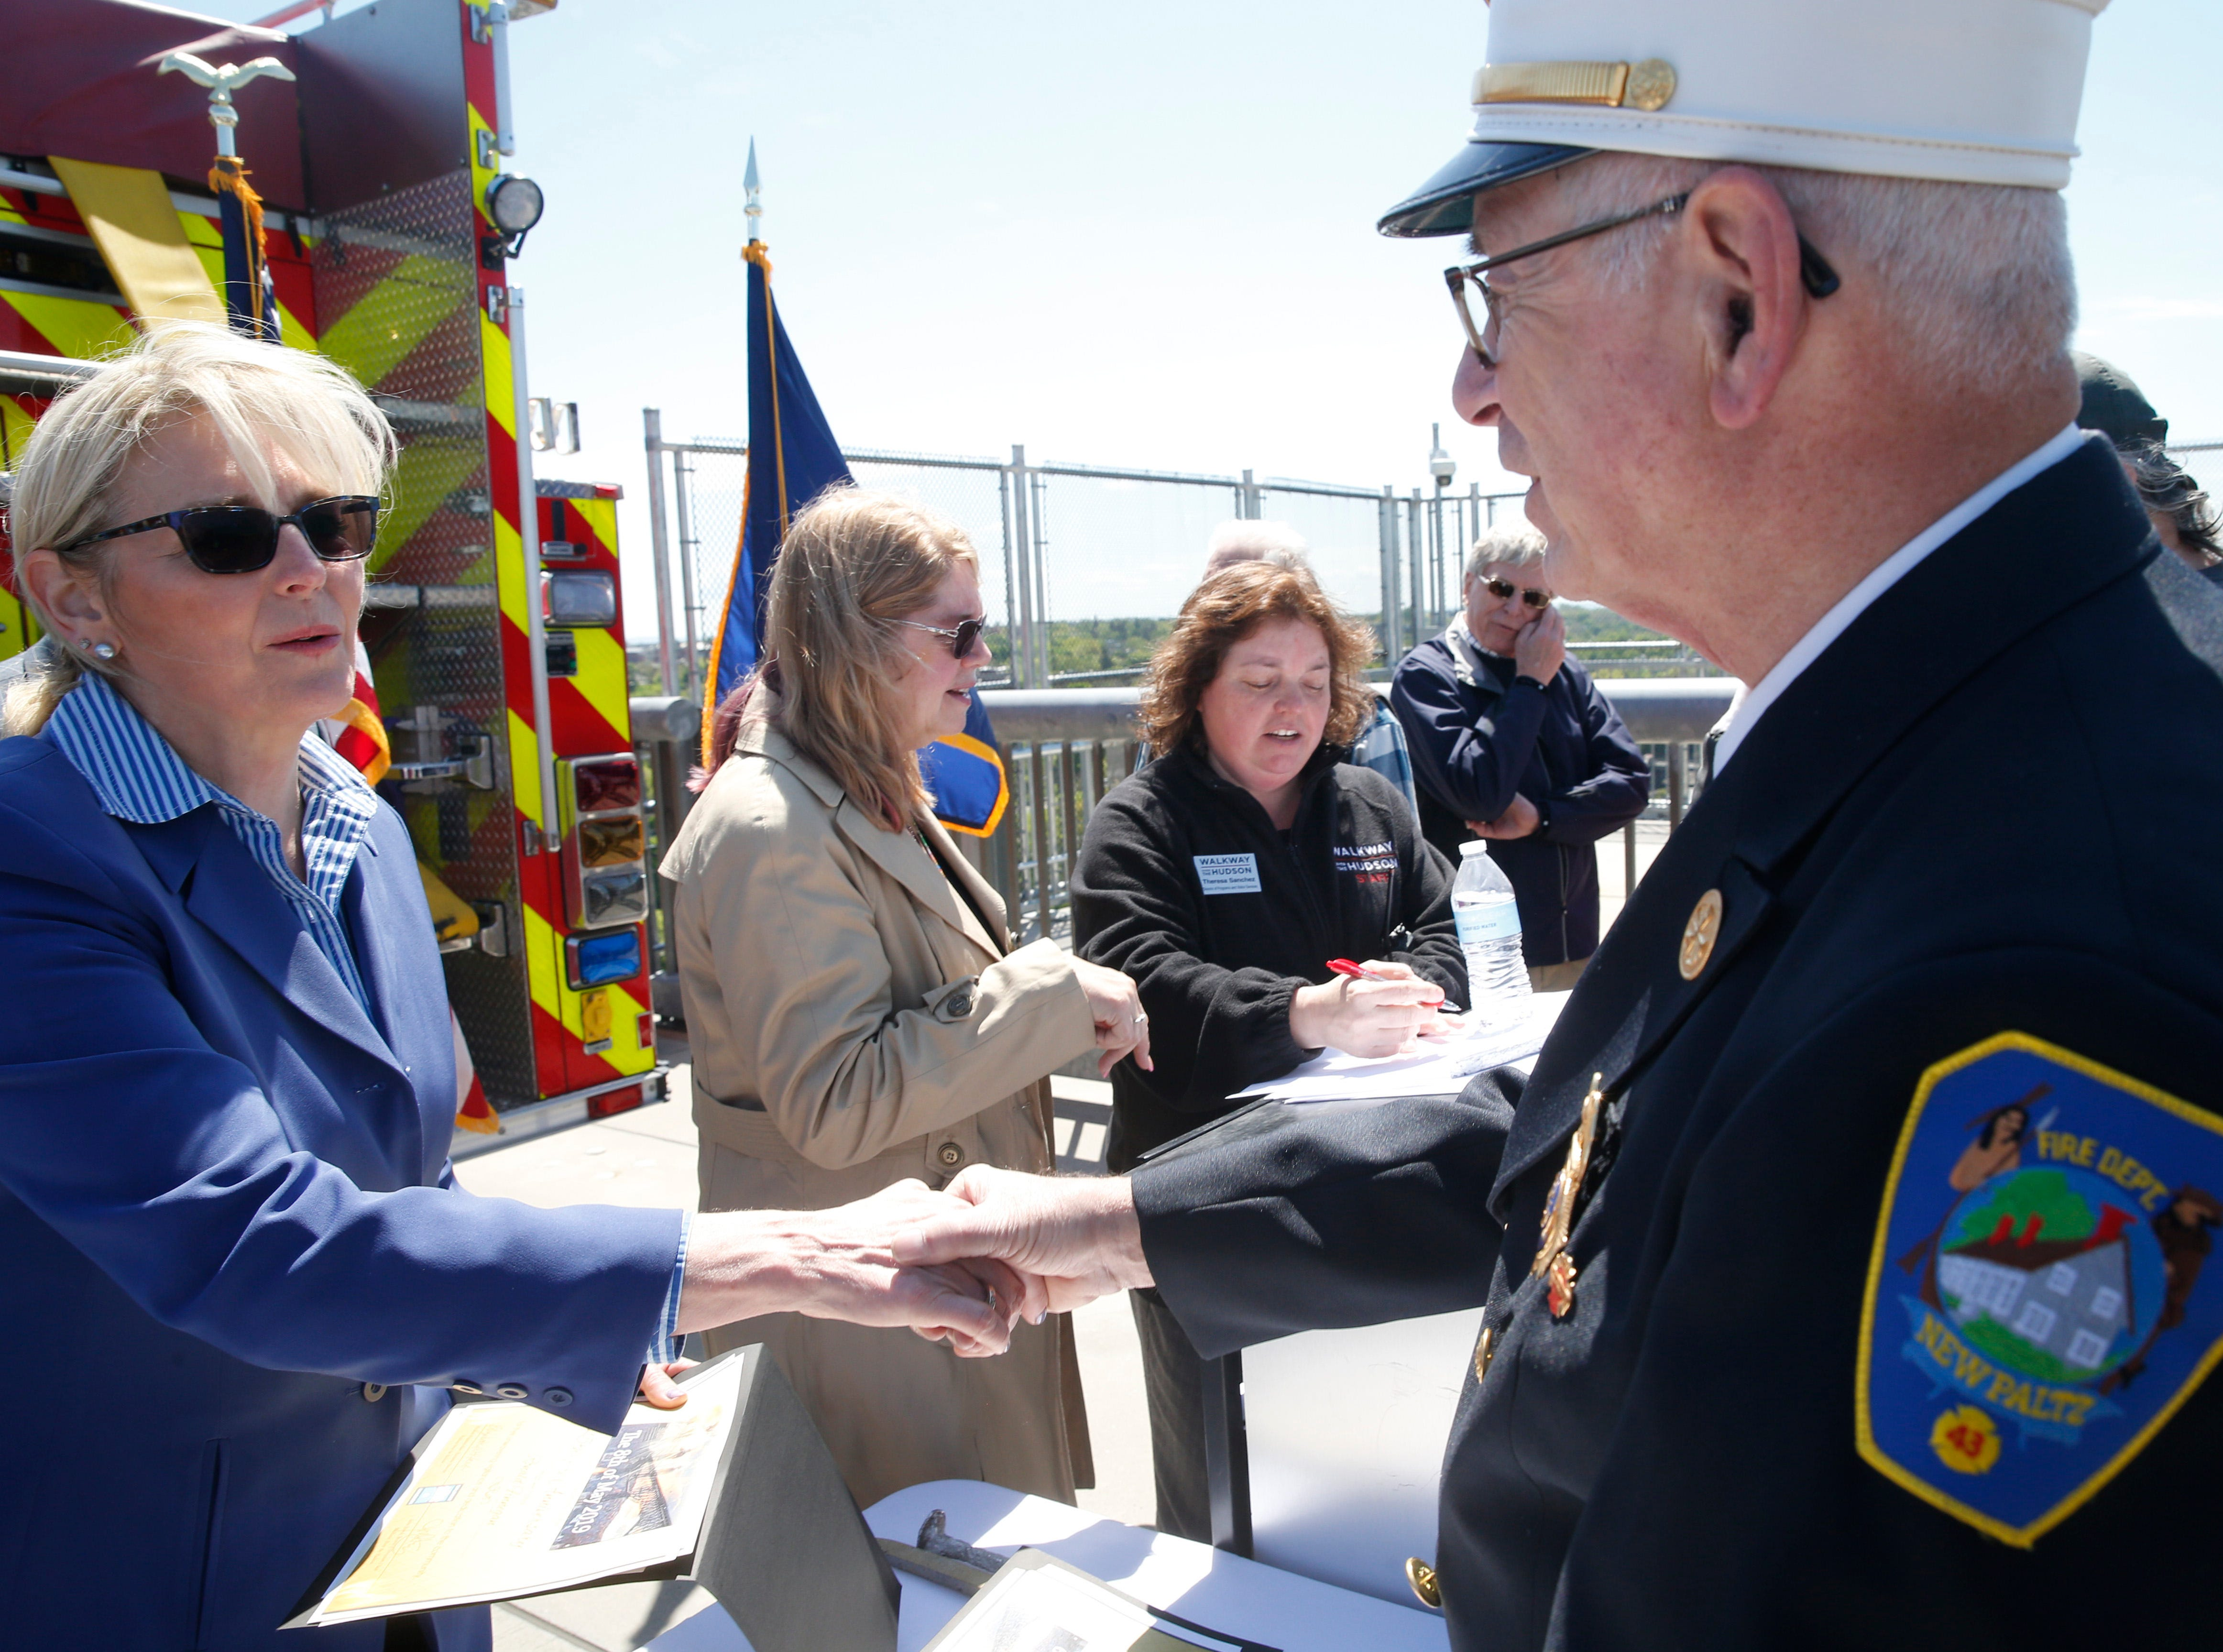 Walkway Over the Hudson executive director Elizabeth Waldstein-Hart gives a certificate of appreciation to former fire chief of New Paltz Fire Department George Wirthmann during Wednesday's commemoration of 45th anniversary of the fire that engulfed the railroad bridge on May 8, 2019.